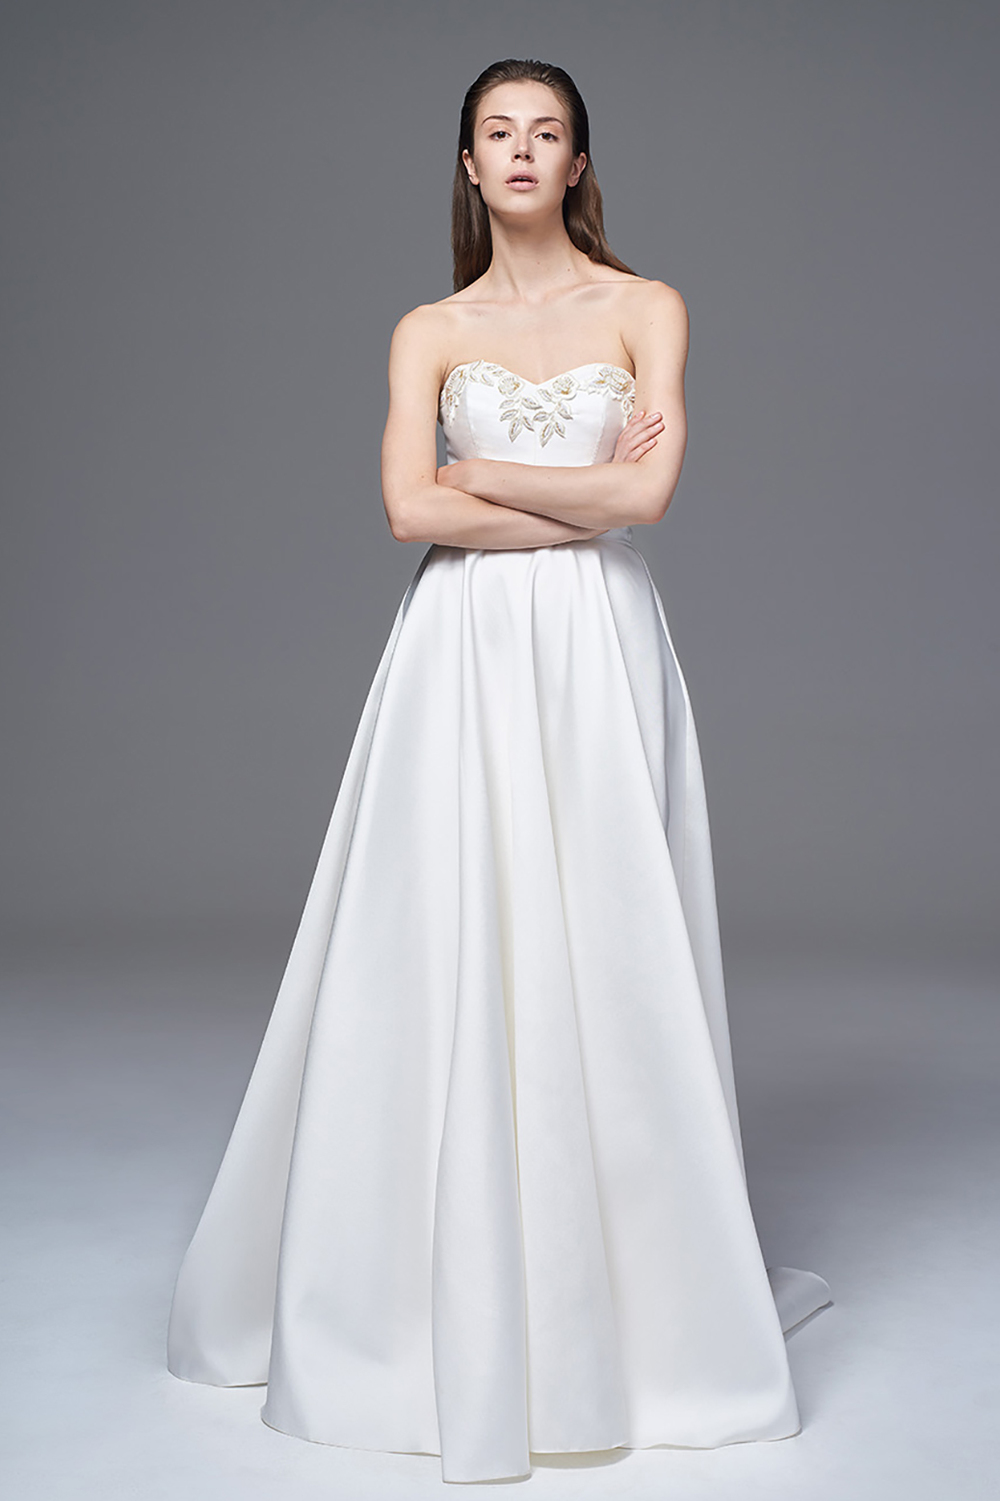 THE ELLIE STRUCTURED MIKADO STRAPLESS DRESS WITH HAND BEADED EMBELLISHMENT. BRIDAL WEDDING DRESS BY HALFPENNY LONDON